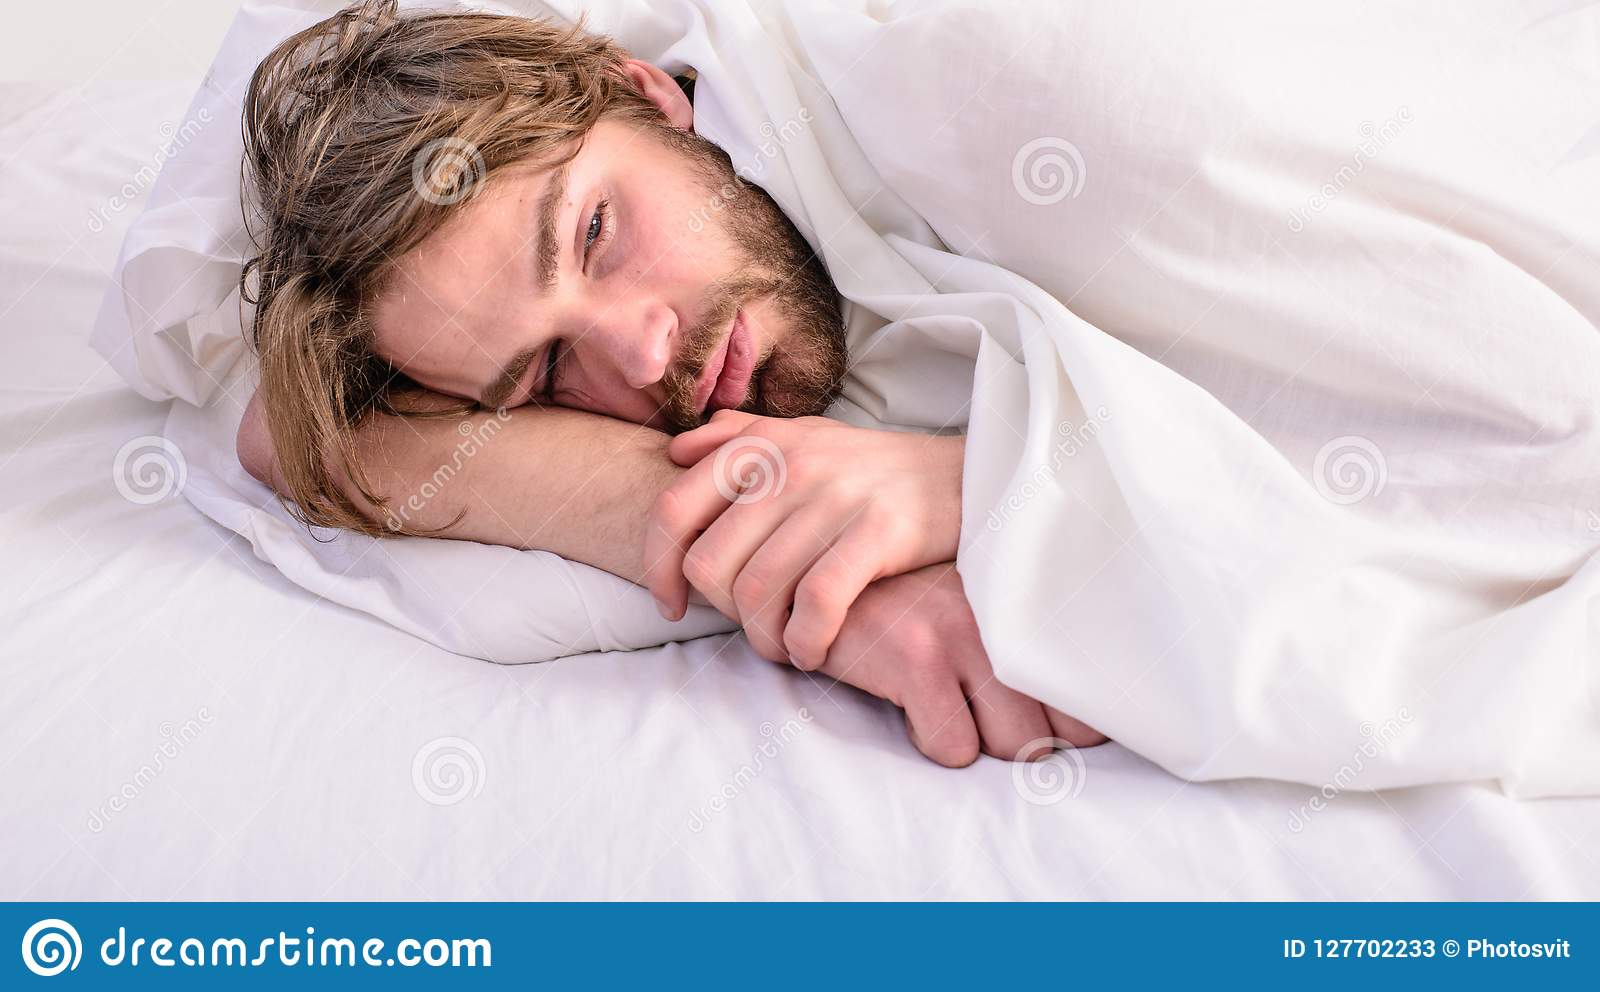 Man unshaven handsome relaxing bed. Man sleepy drowsy unshaven bearded face covered with blanket having rest. Guy lay